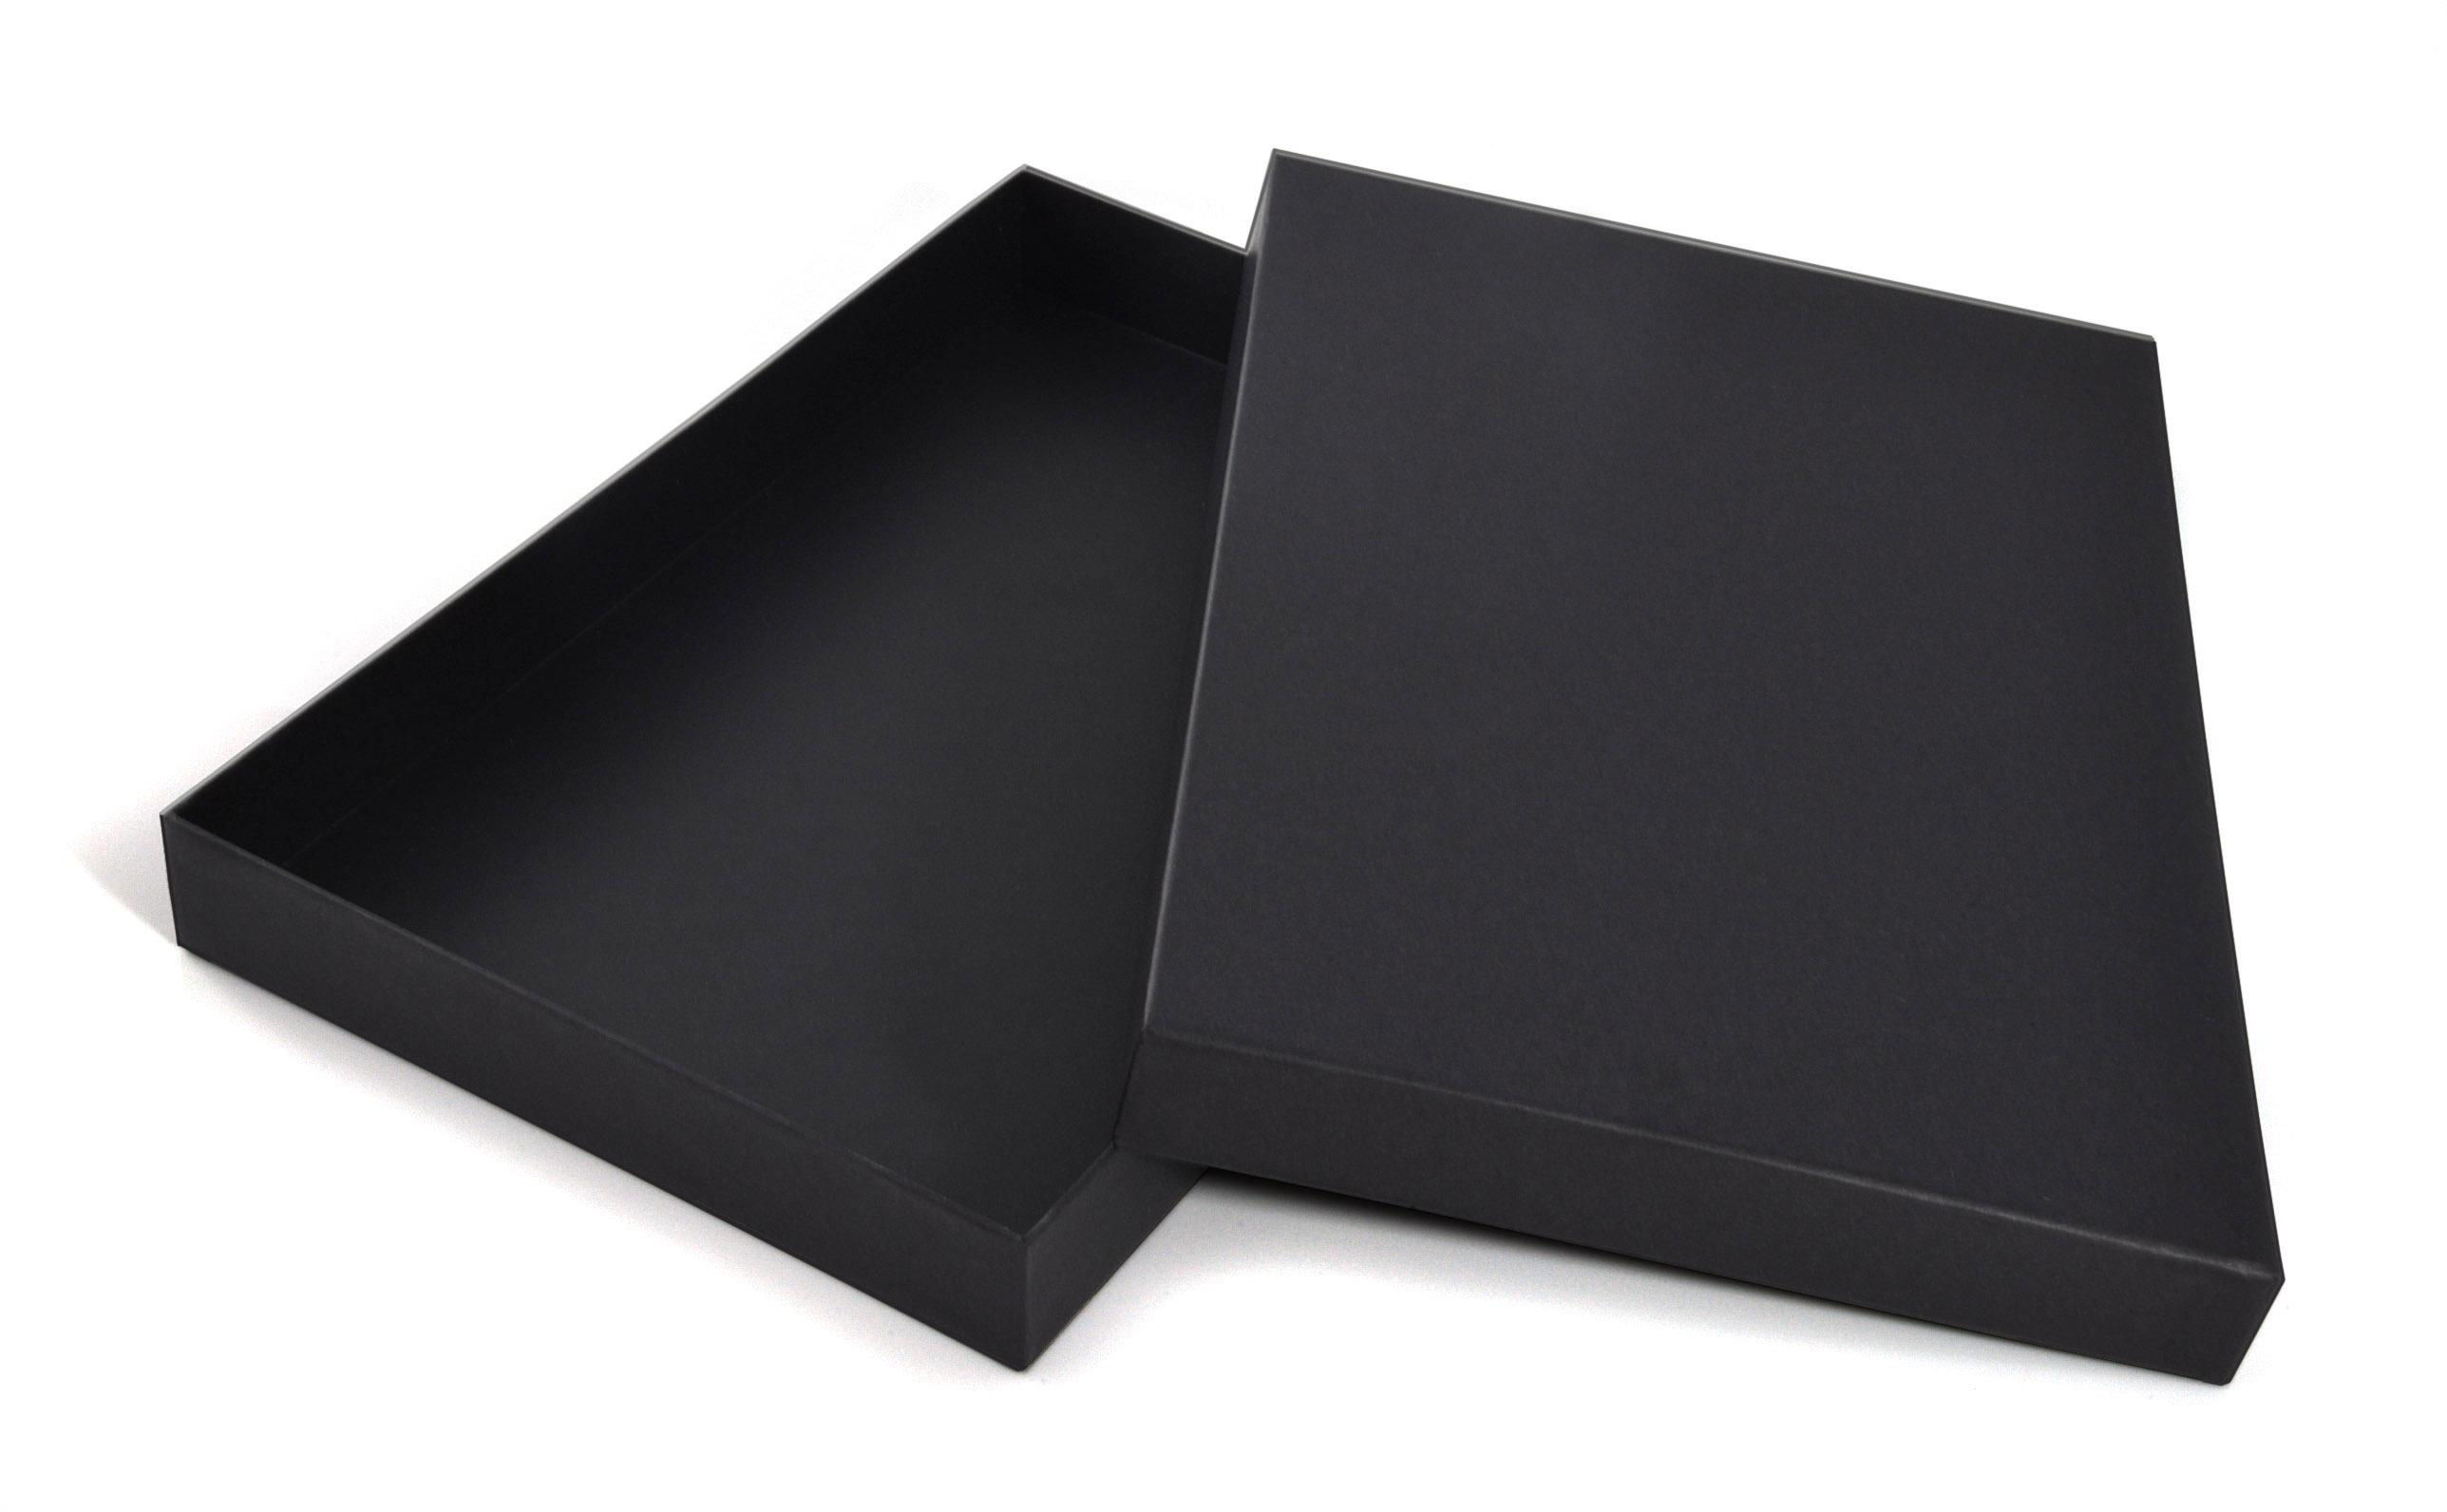 Stationary Boxes Luxury A4 Black Gift Box Stationery Box 35mm Depth Wpa4bl